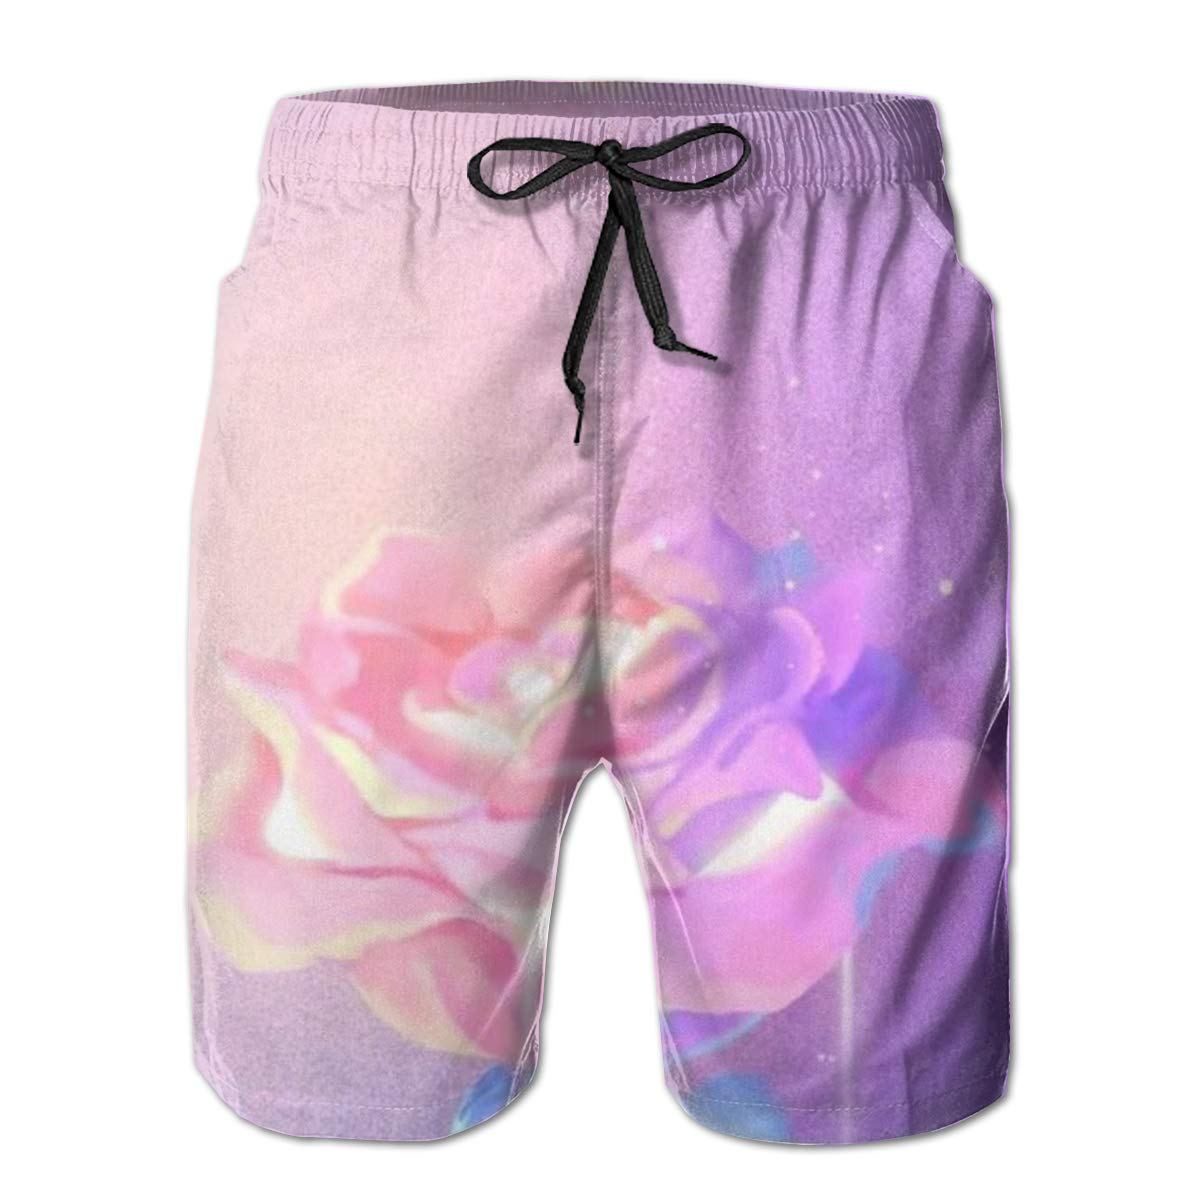 LDFUMG Moon Rose Mens Beach Board Shorts Quick Dry Summer Casual Swimming Soft Fabric with Pocket